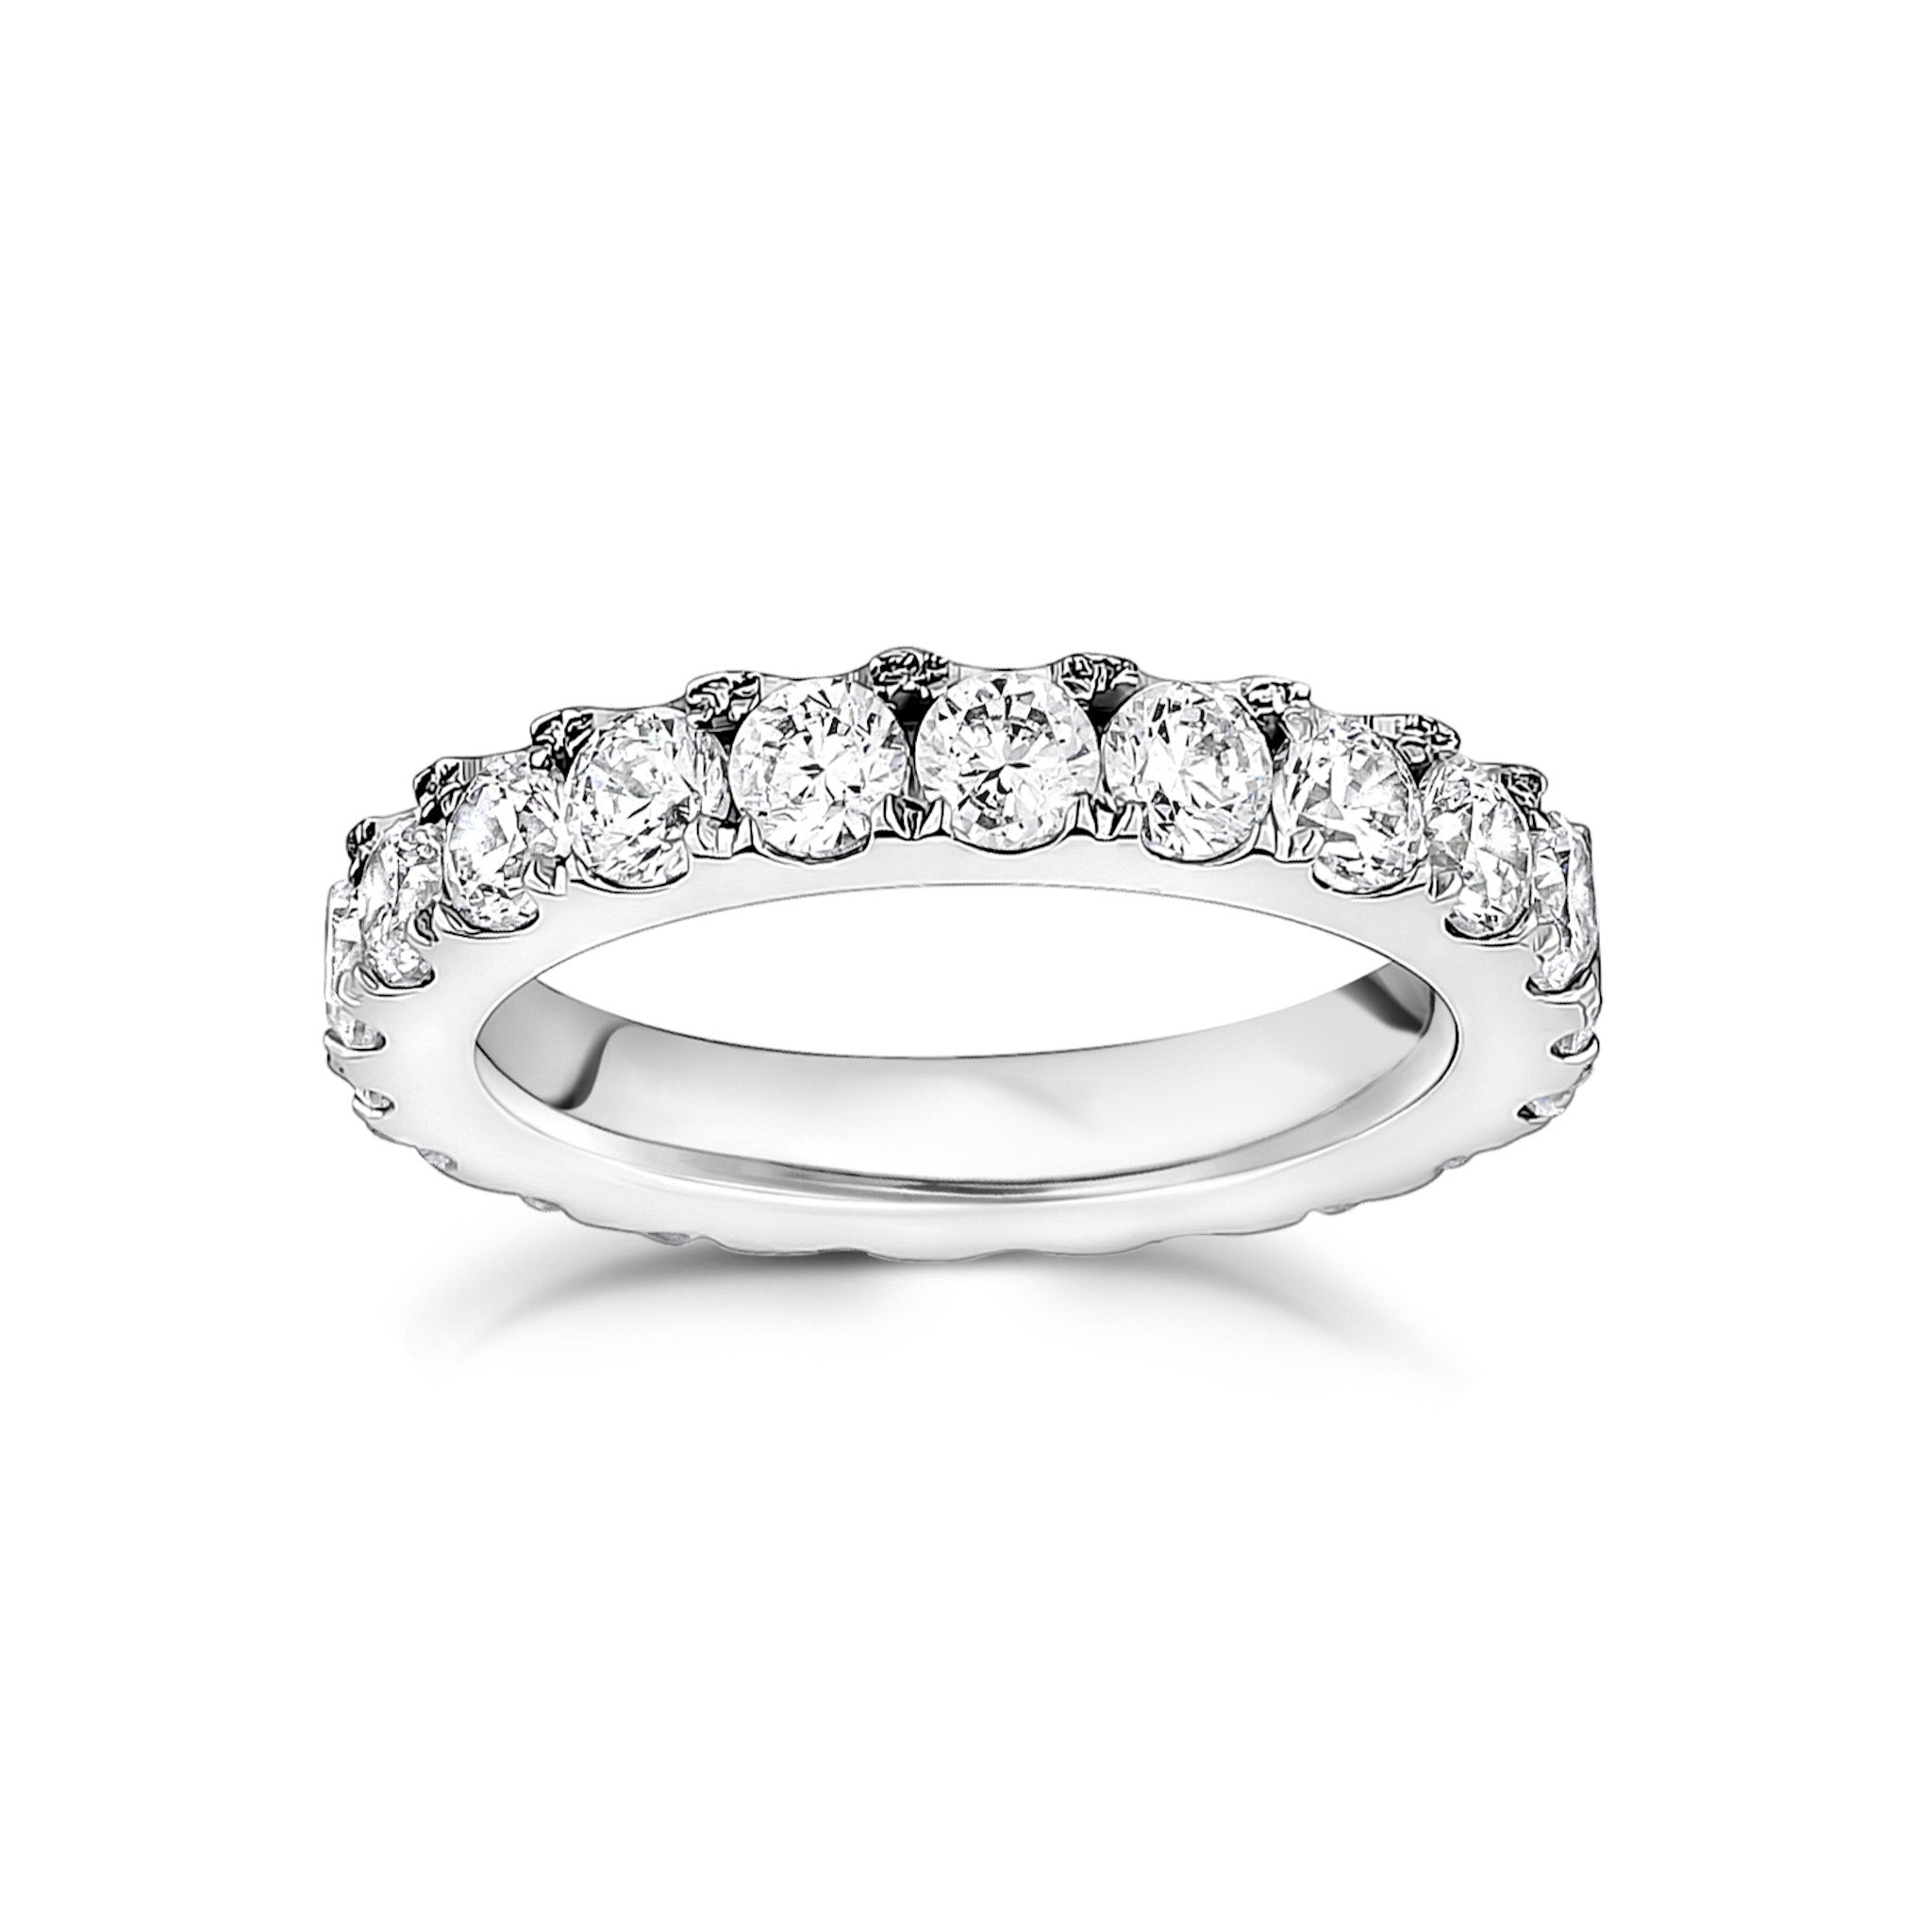 Women Ring - 3.5mm Cubic Zircon Stainless Steel Eternity Band